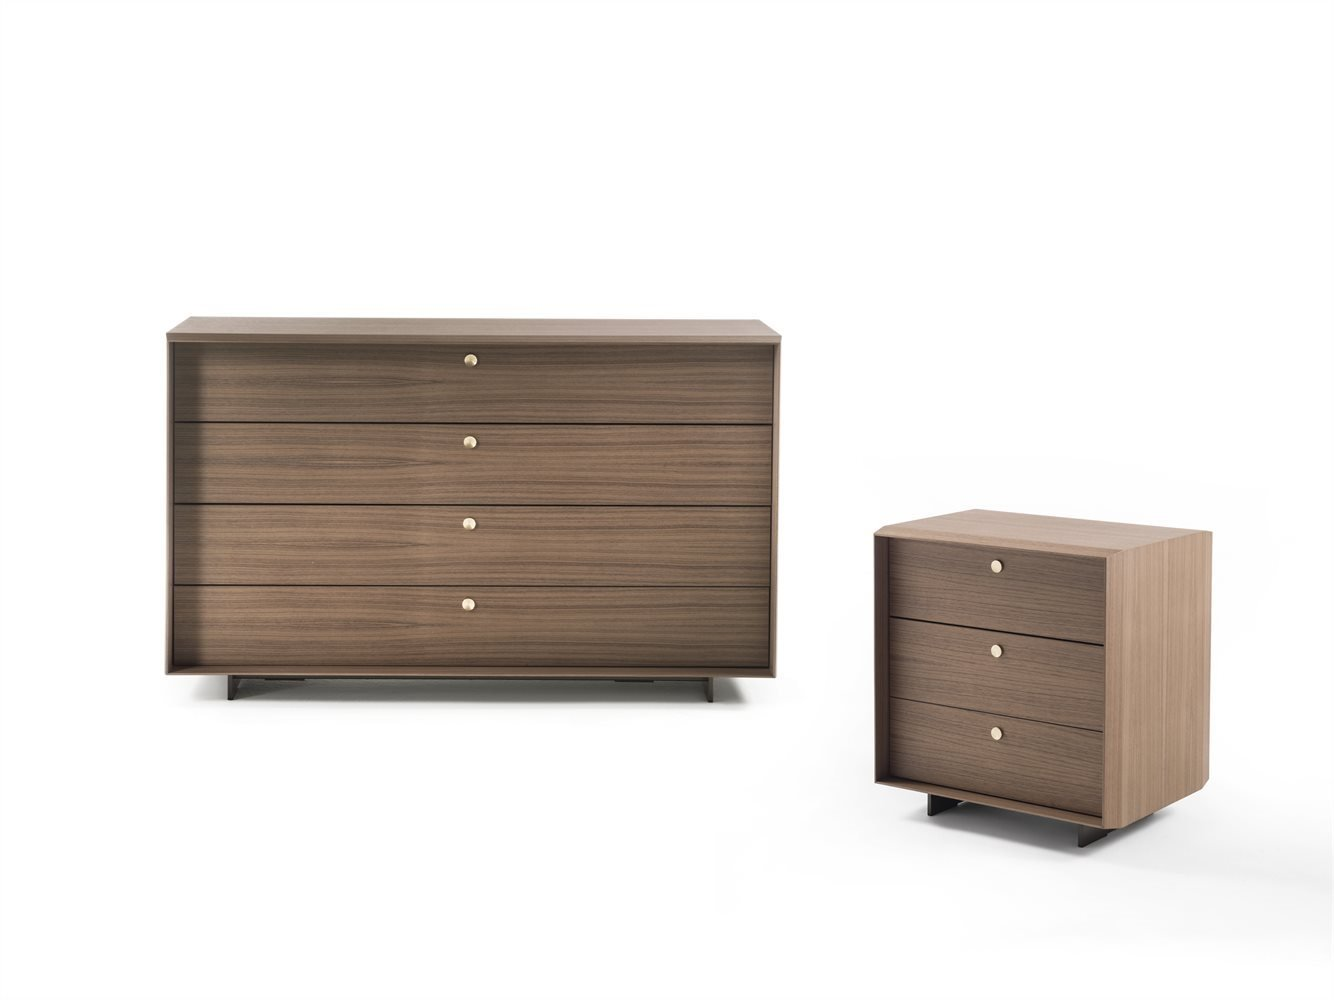 Sonja Night 1 Chest Drawer cabinet from Porada, designed by Gino Carollo